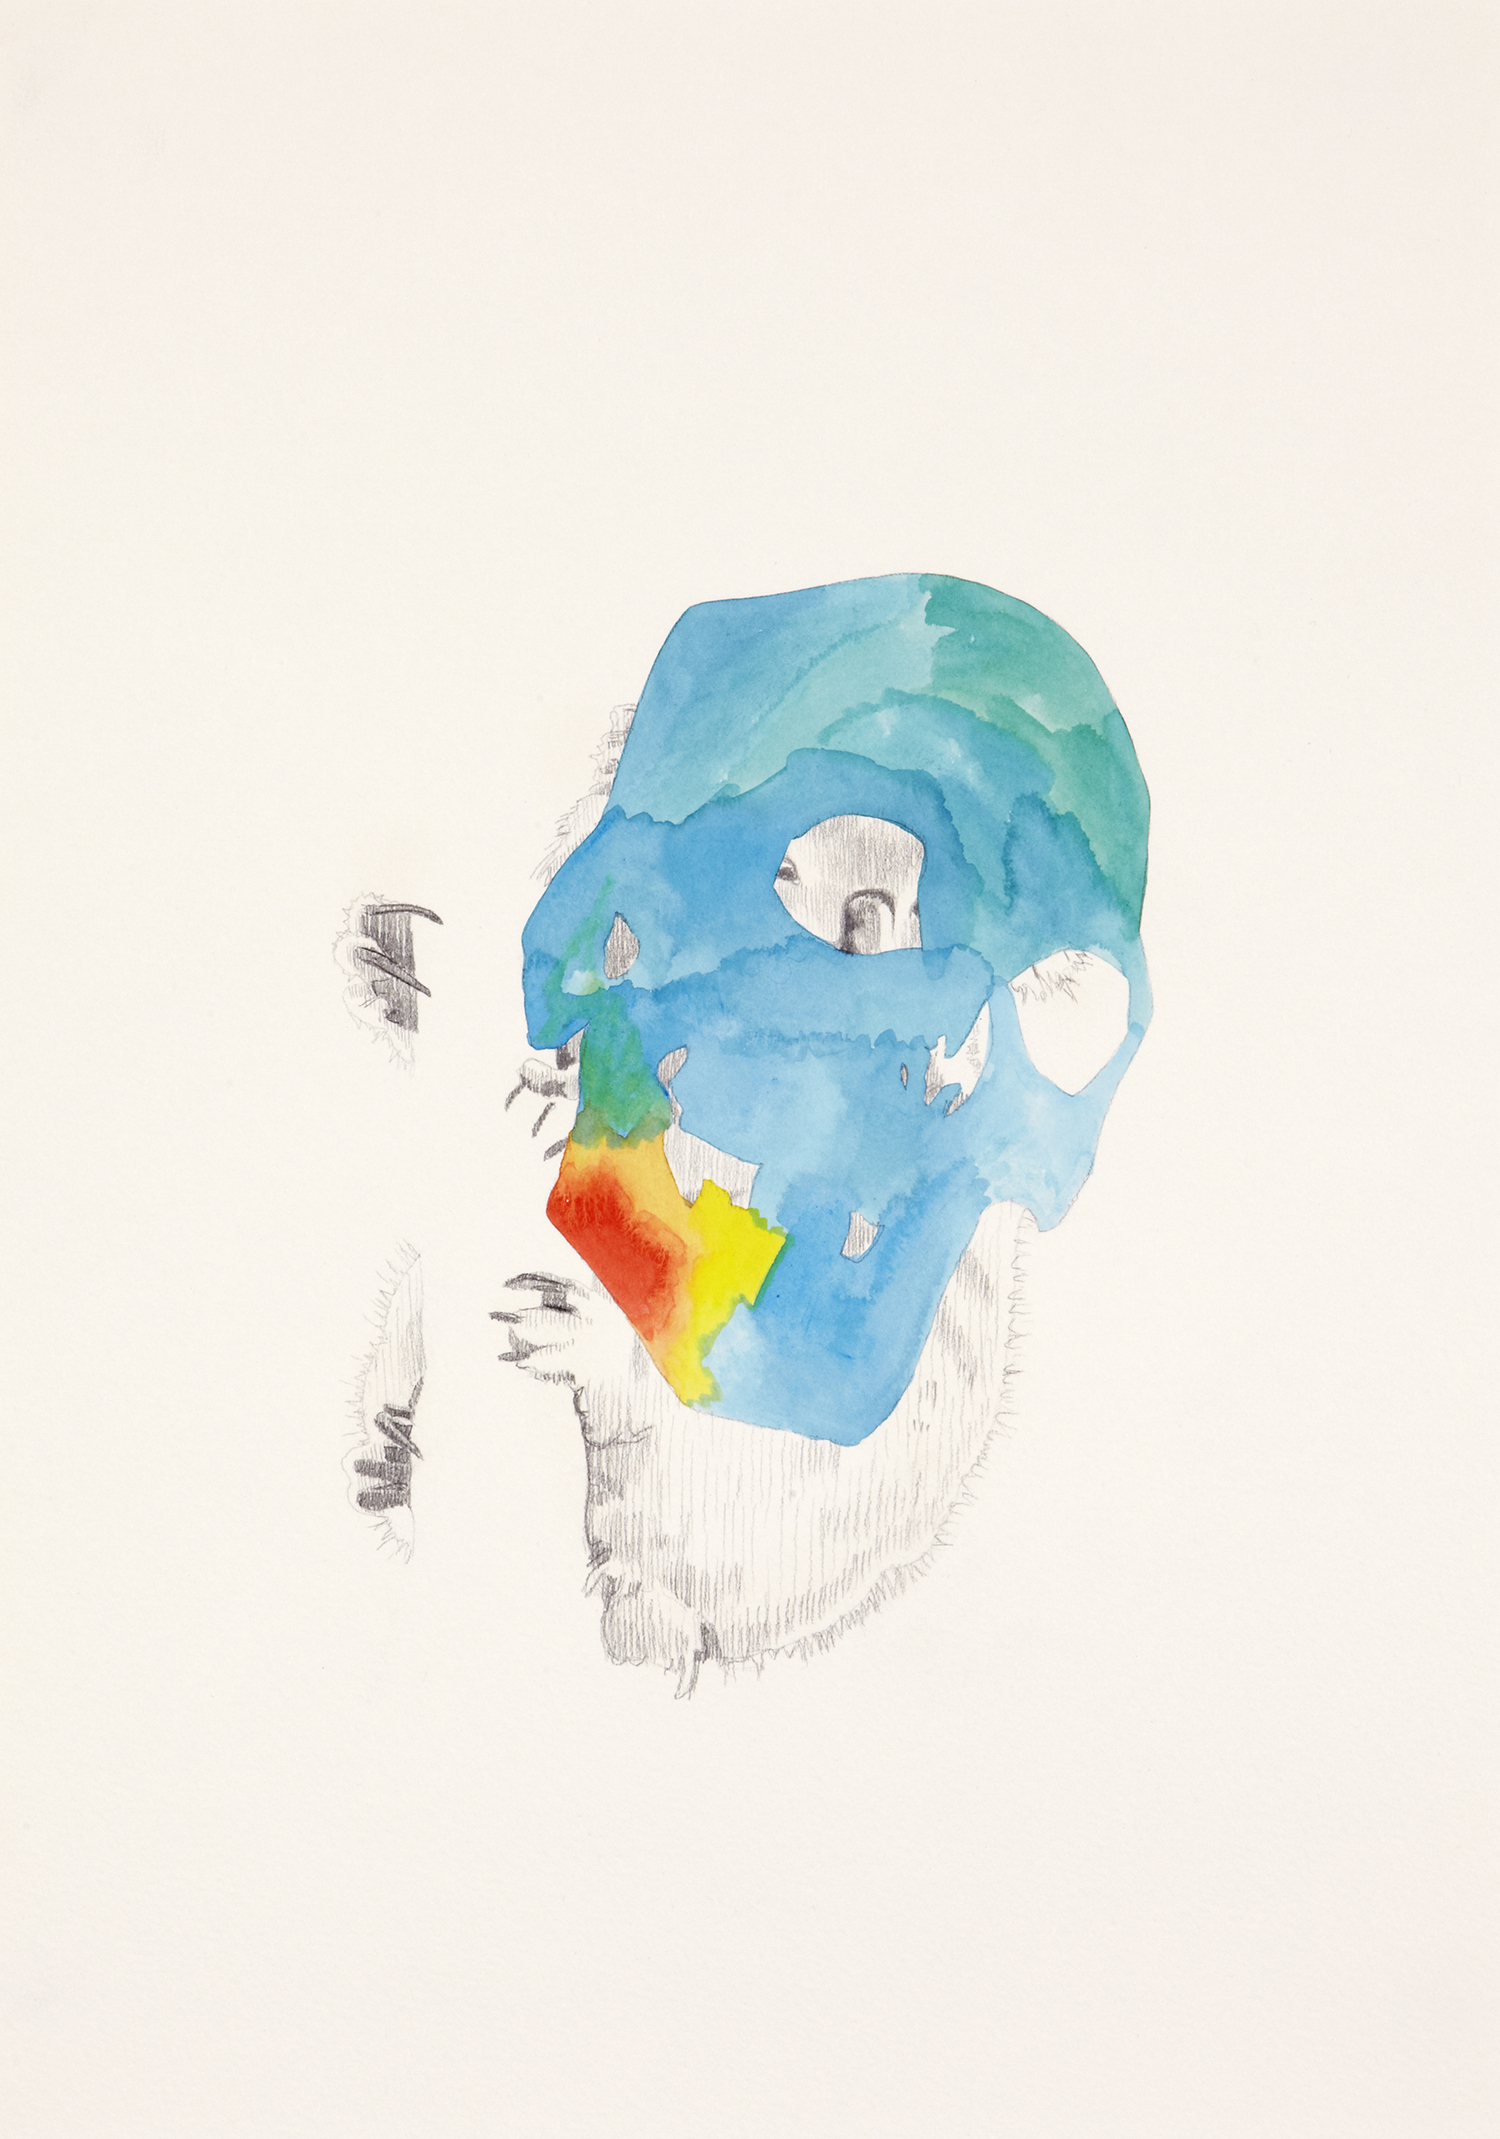 Skull Centric Behaviour #4, 2011, Watercolour and pencil on paper, 42.0 x 29.7 cm, Photo: Sam Scoufos